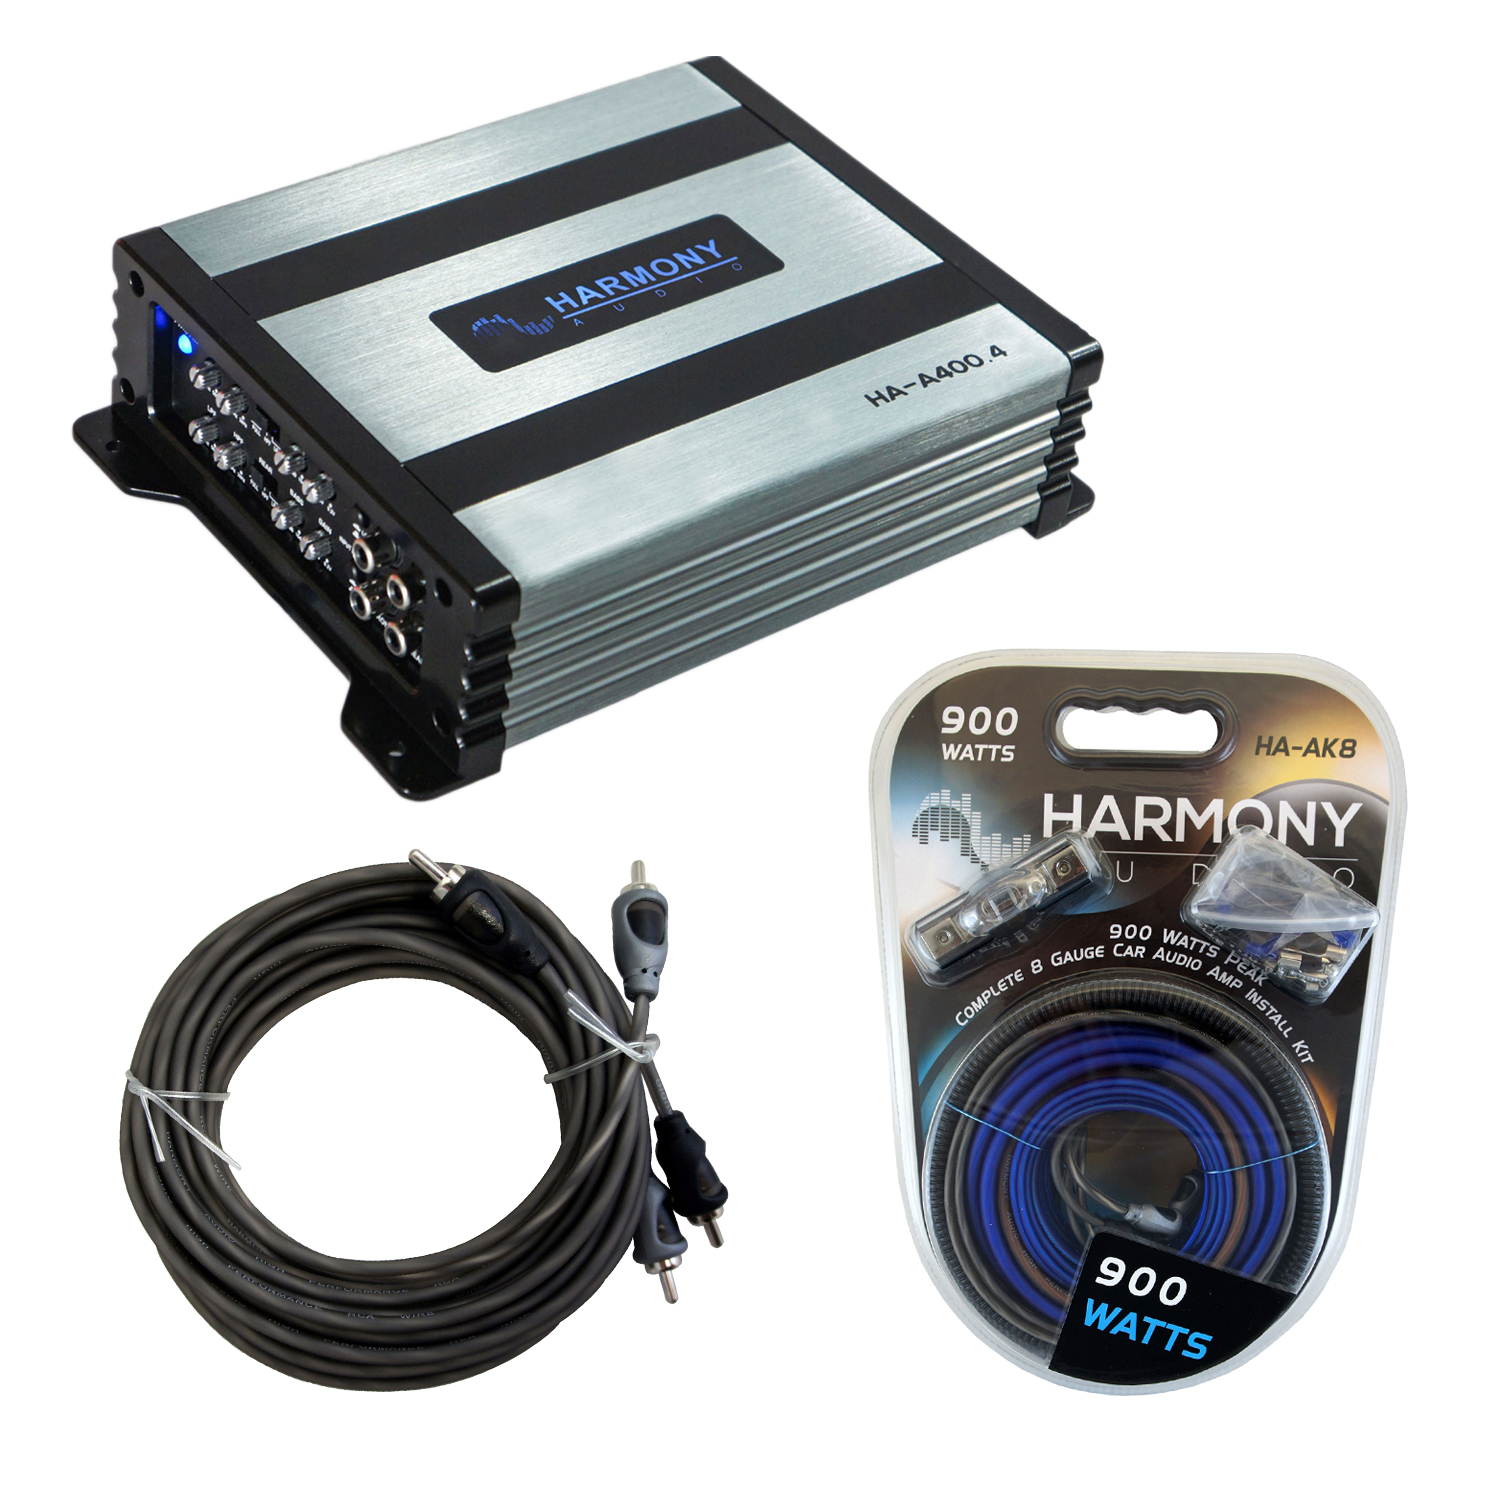 Harmony Audio HA-A400.4 Car Stereo Alloy Amp 4 Channel Fulll Range Speaker or Sub Amplifier Bundle with Harmony Audio HA-AK8 Amp Kit and RCAs